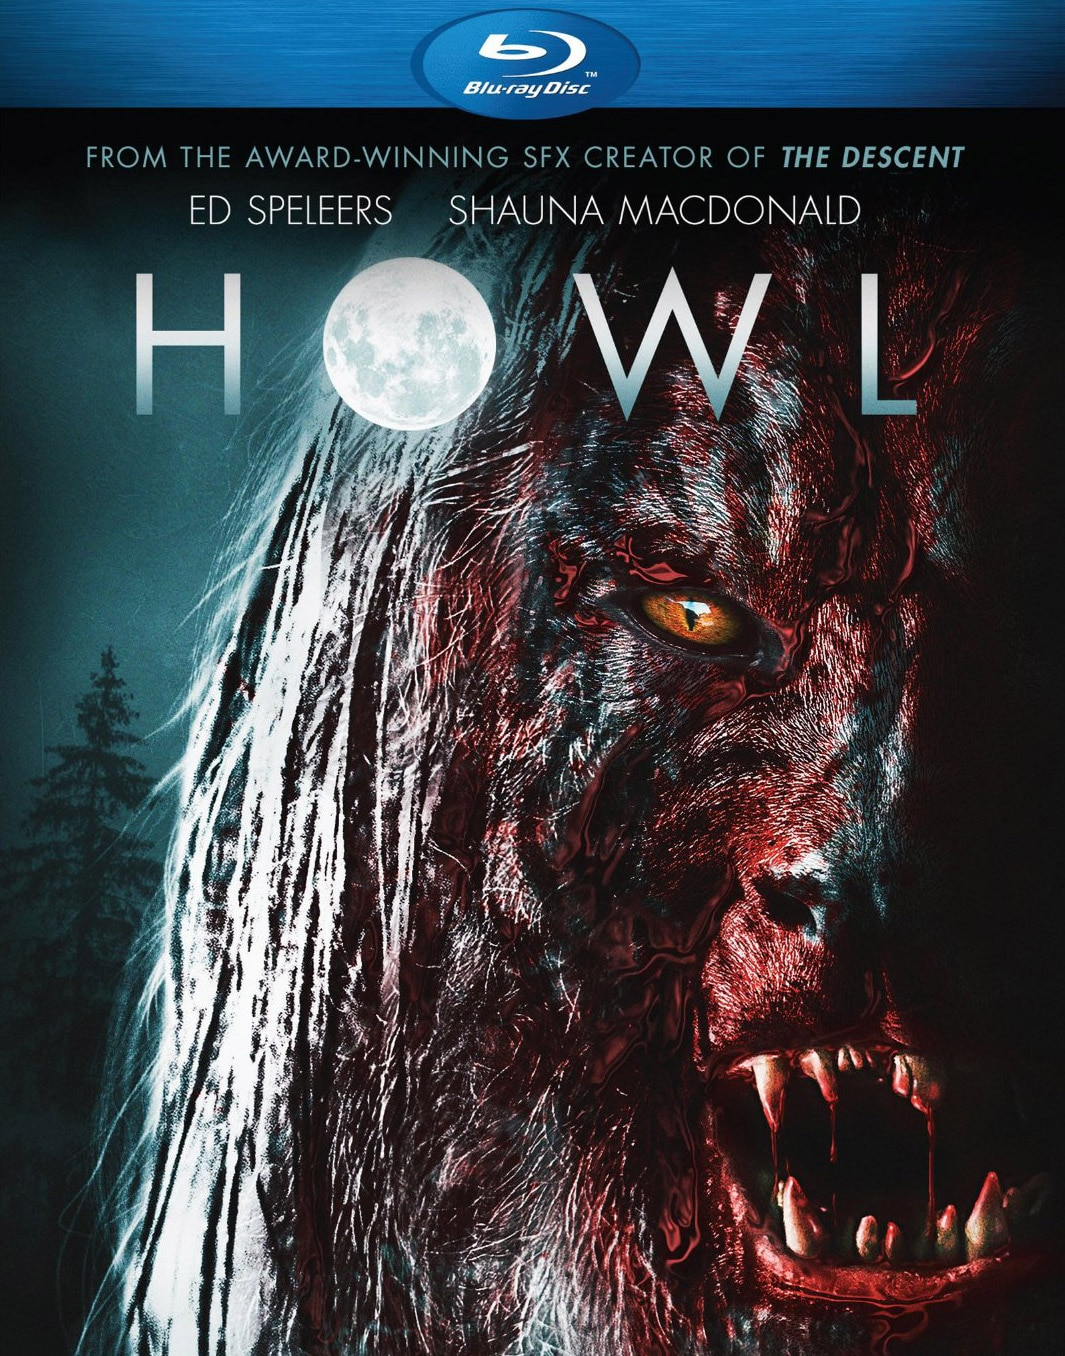 Exclusive: Paul Hyett Talks Howl, Special Effects, and the Influence